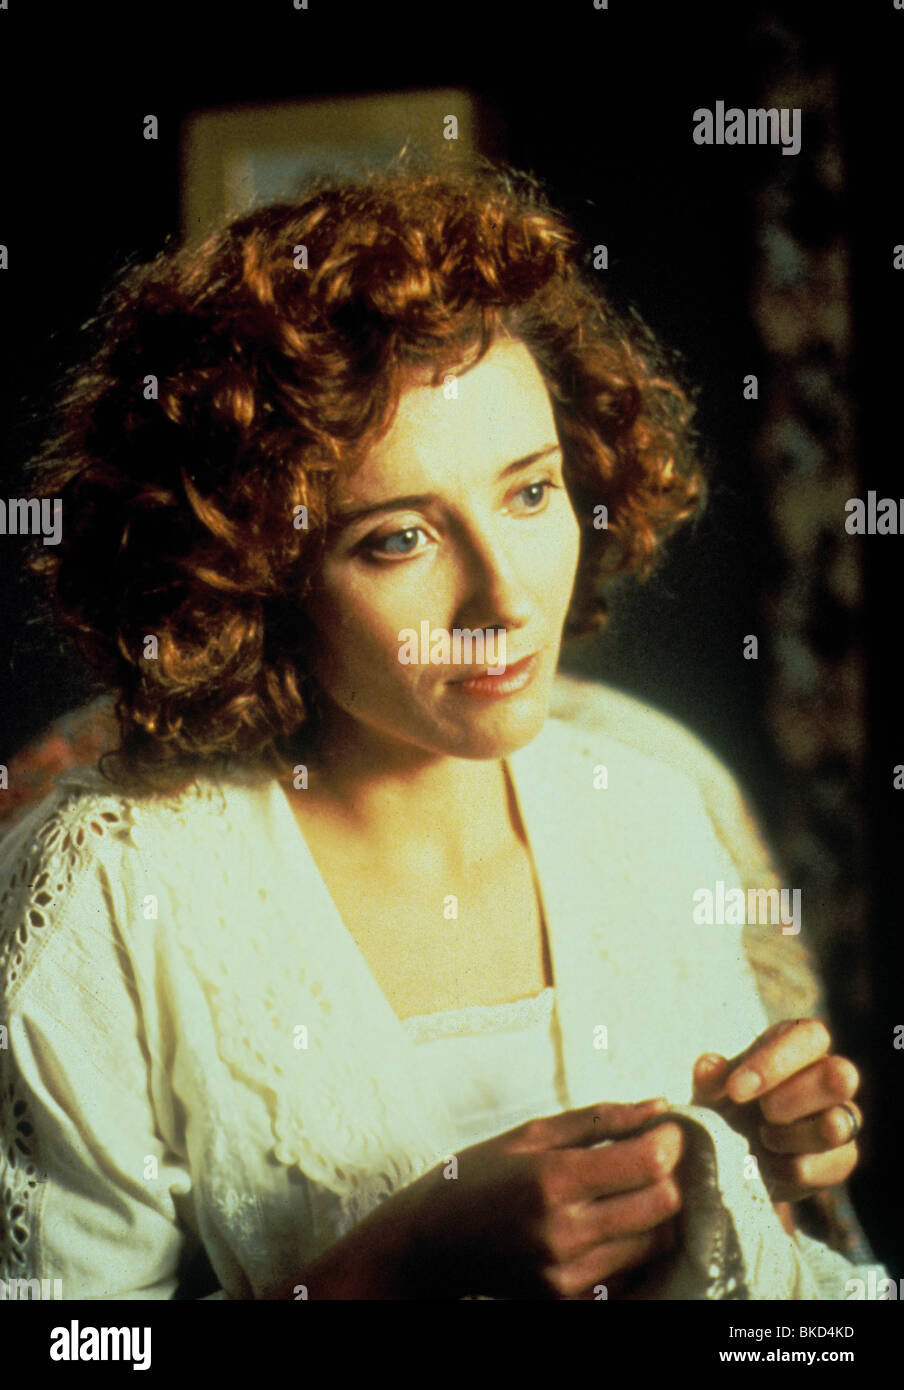 HOWARDS END -1992 EMMA THOMPSON - Stock Image